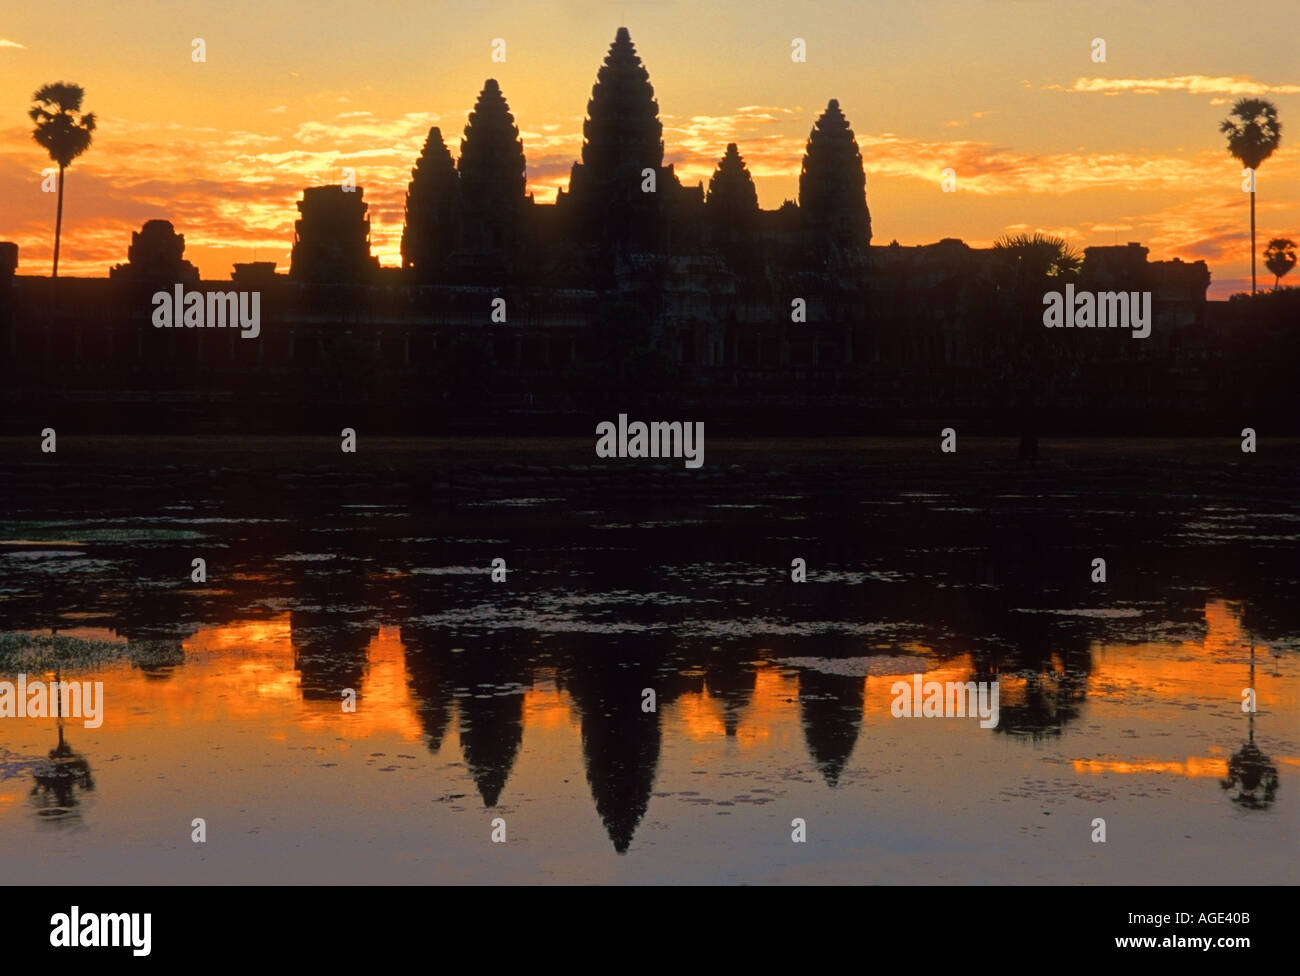 Angkor Wat at Dawn - Stock Image